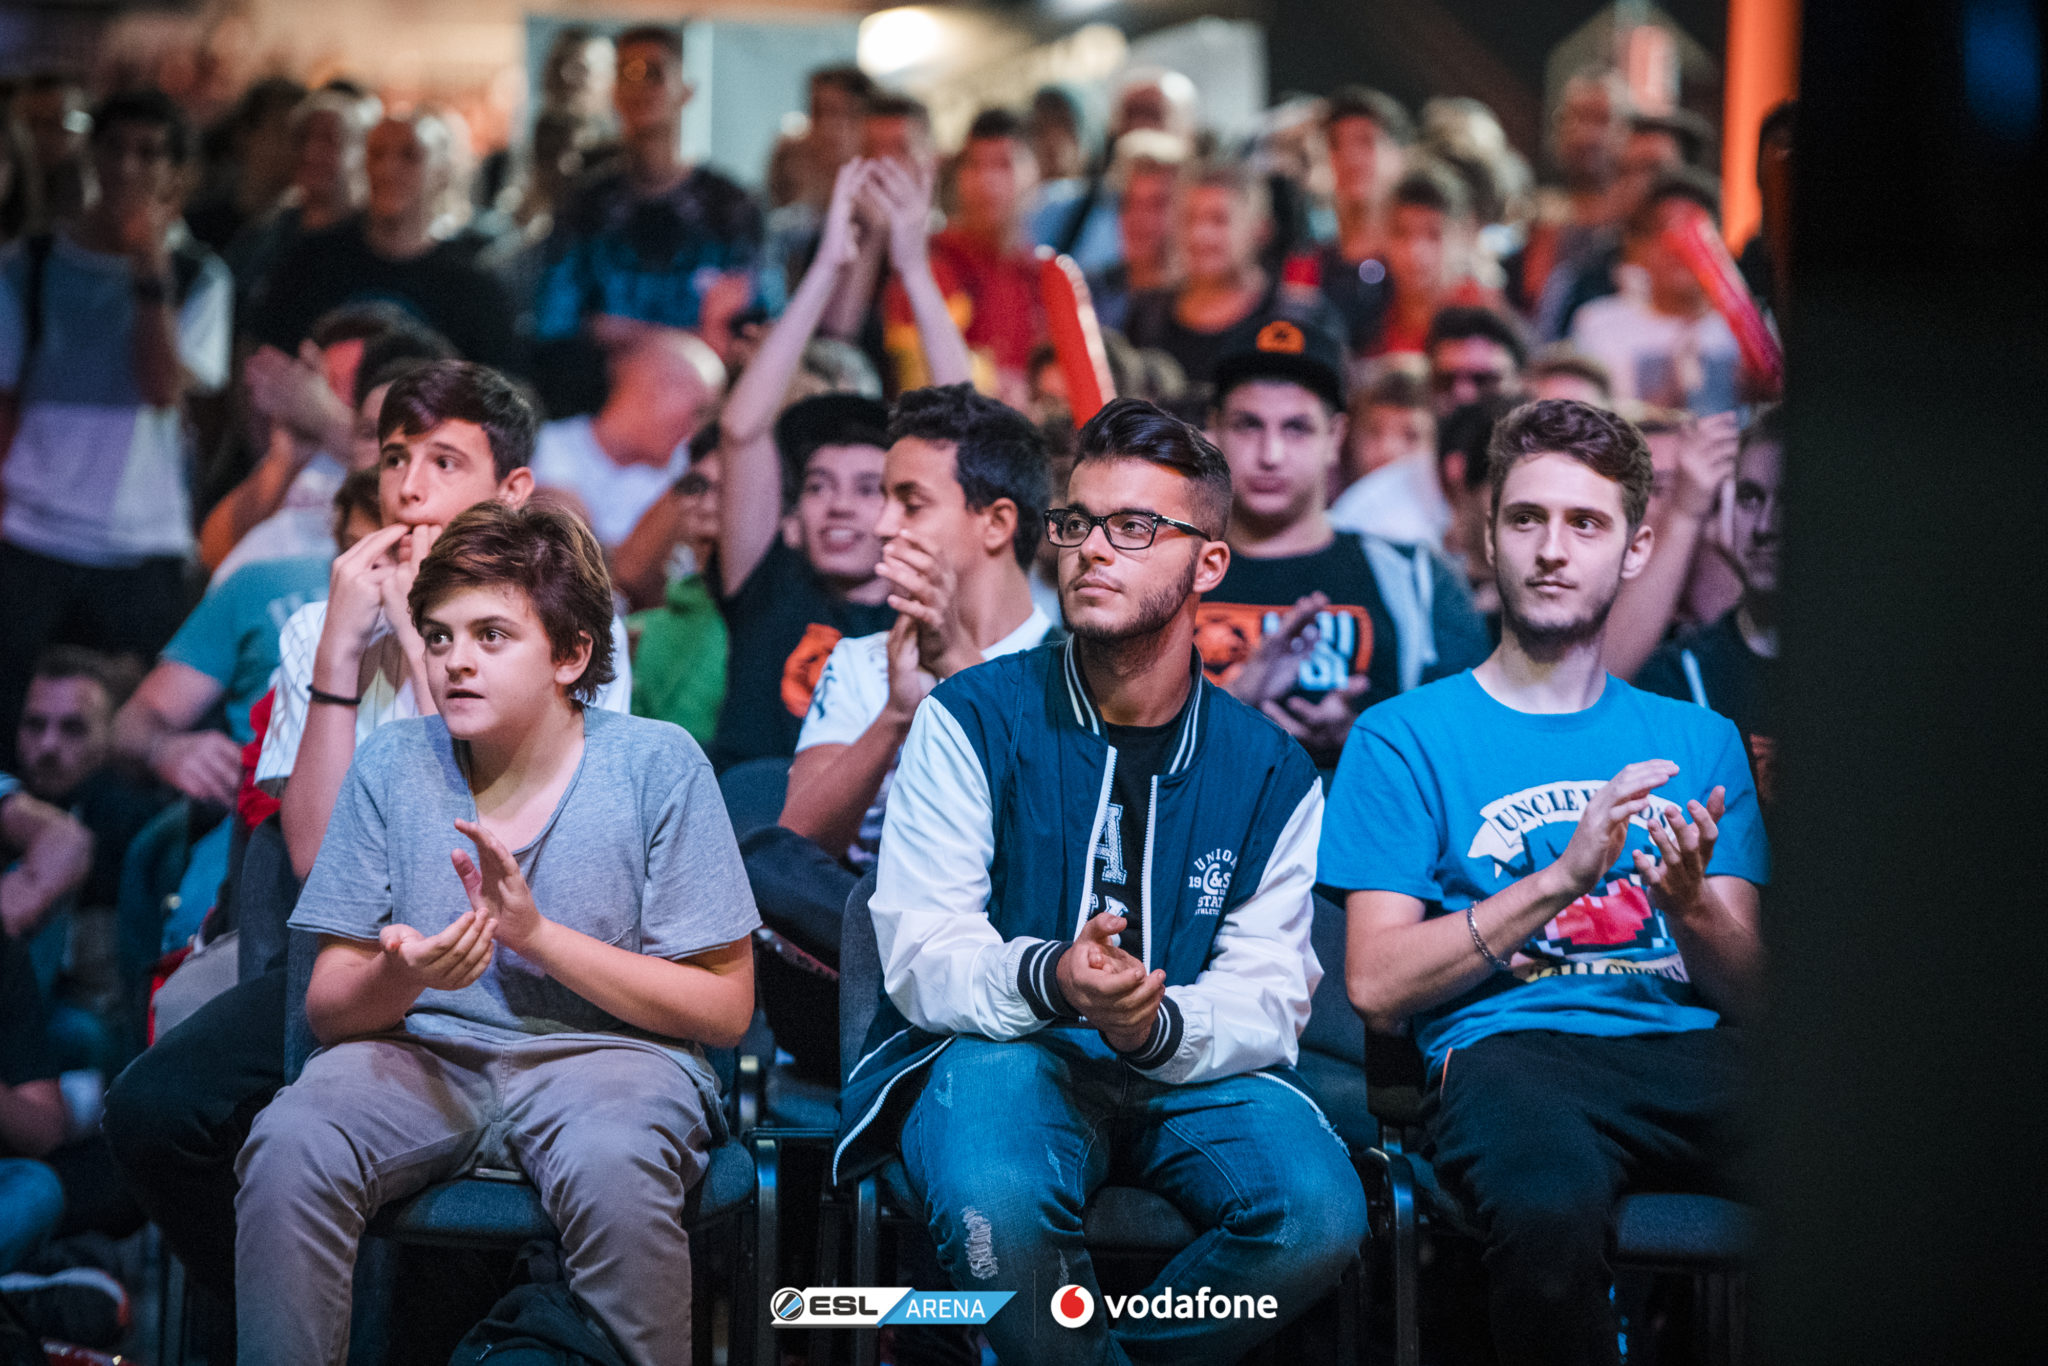 ESL Vodafone Arena a Milan Games Week 2019 - Esport a Milano